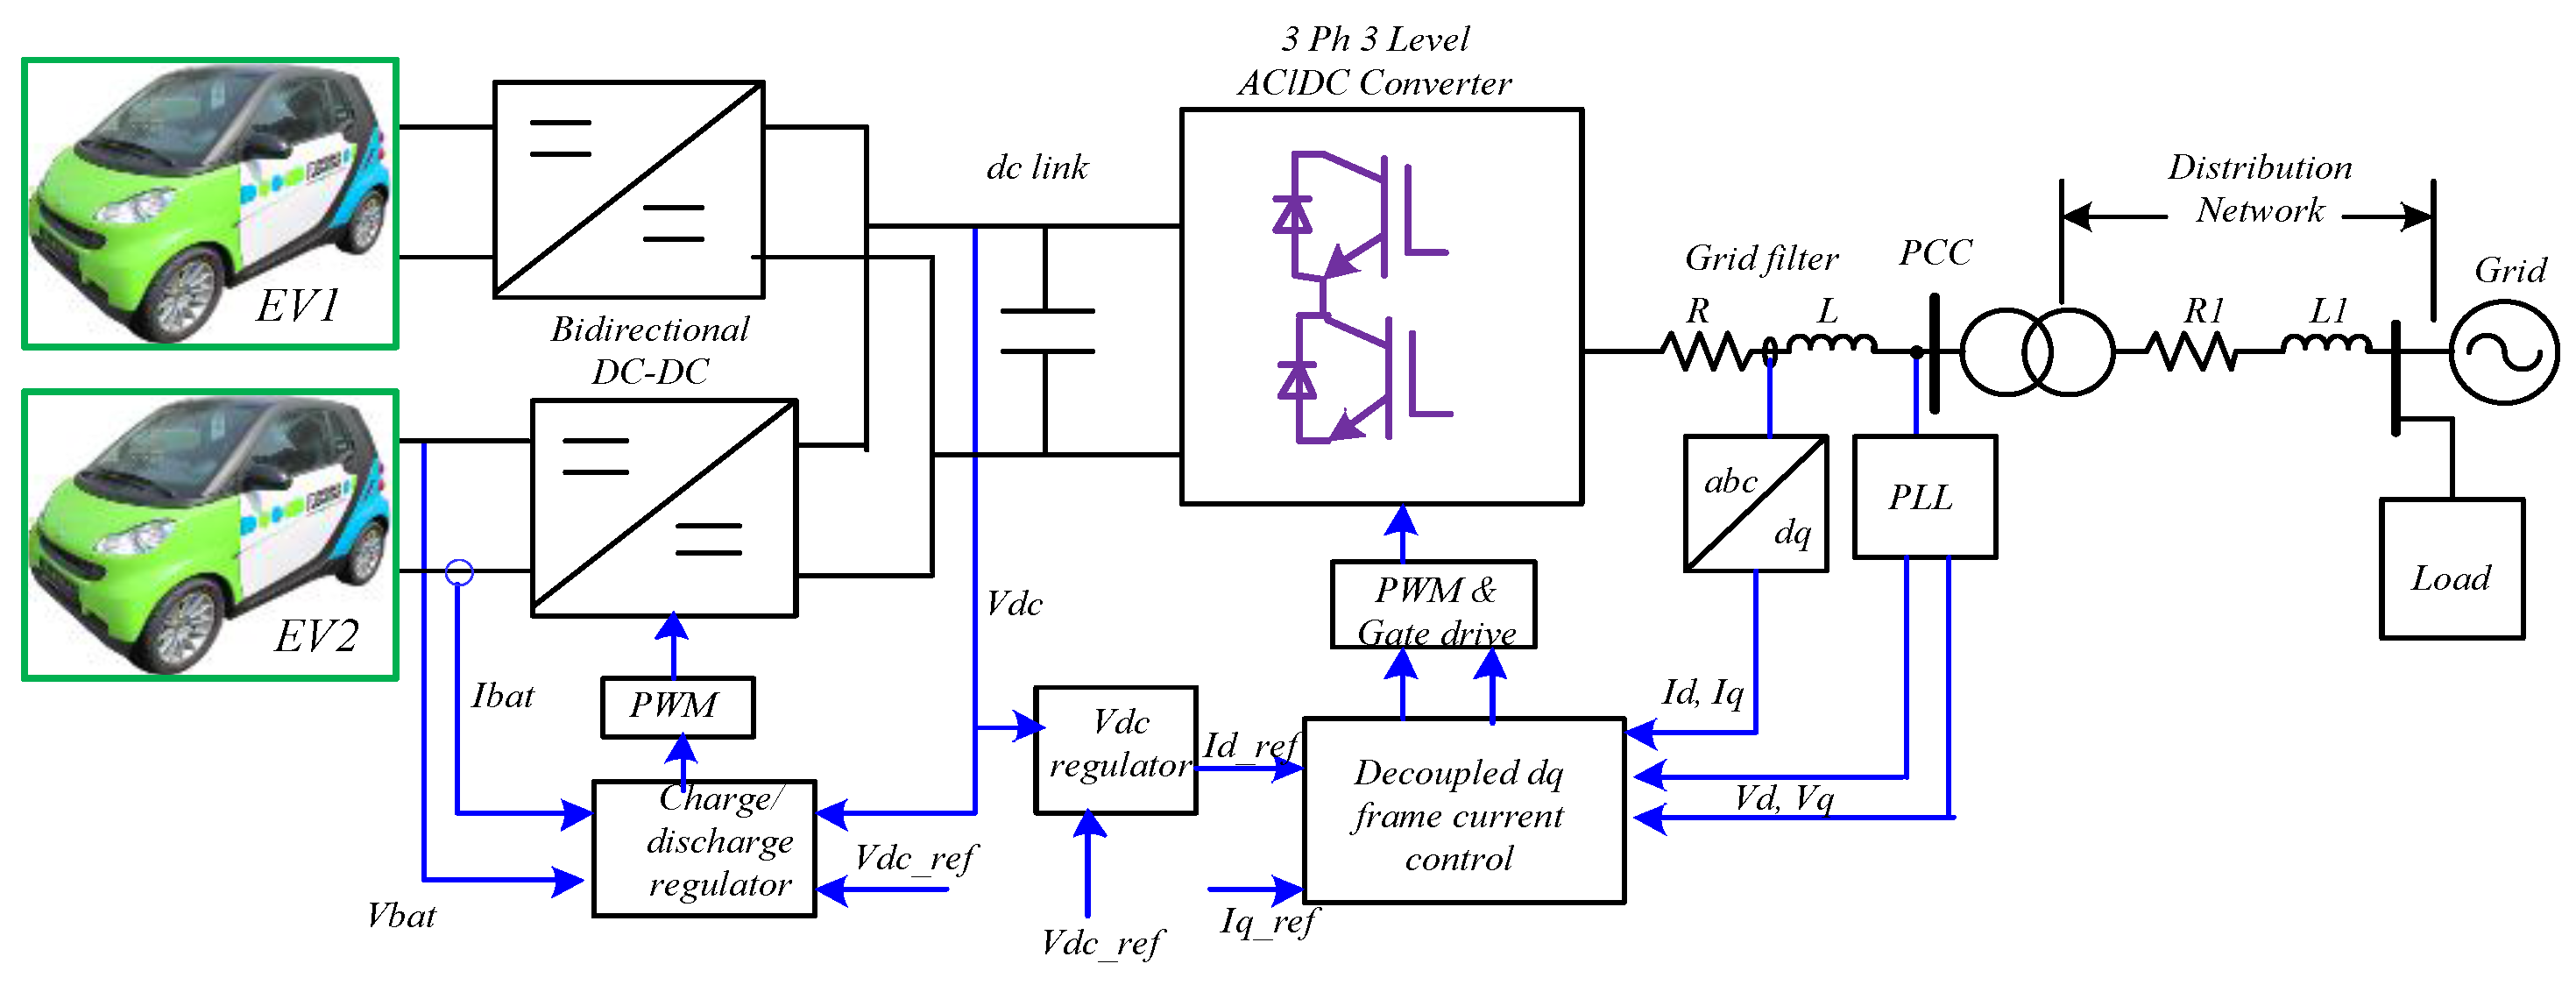 Three Phase Converter Circuit Diagram Block Wiring Frequency Energies Free Full Text Electric Vehicle To Power Grid Integration Using 3 Motor Control Diagrams